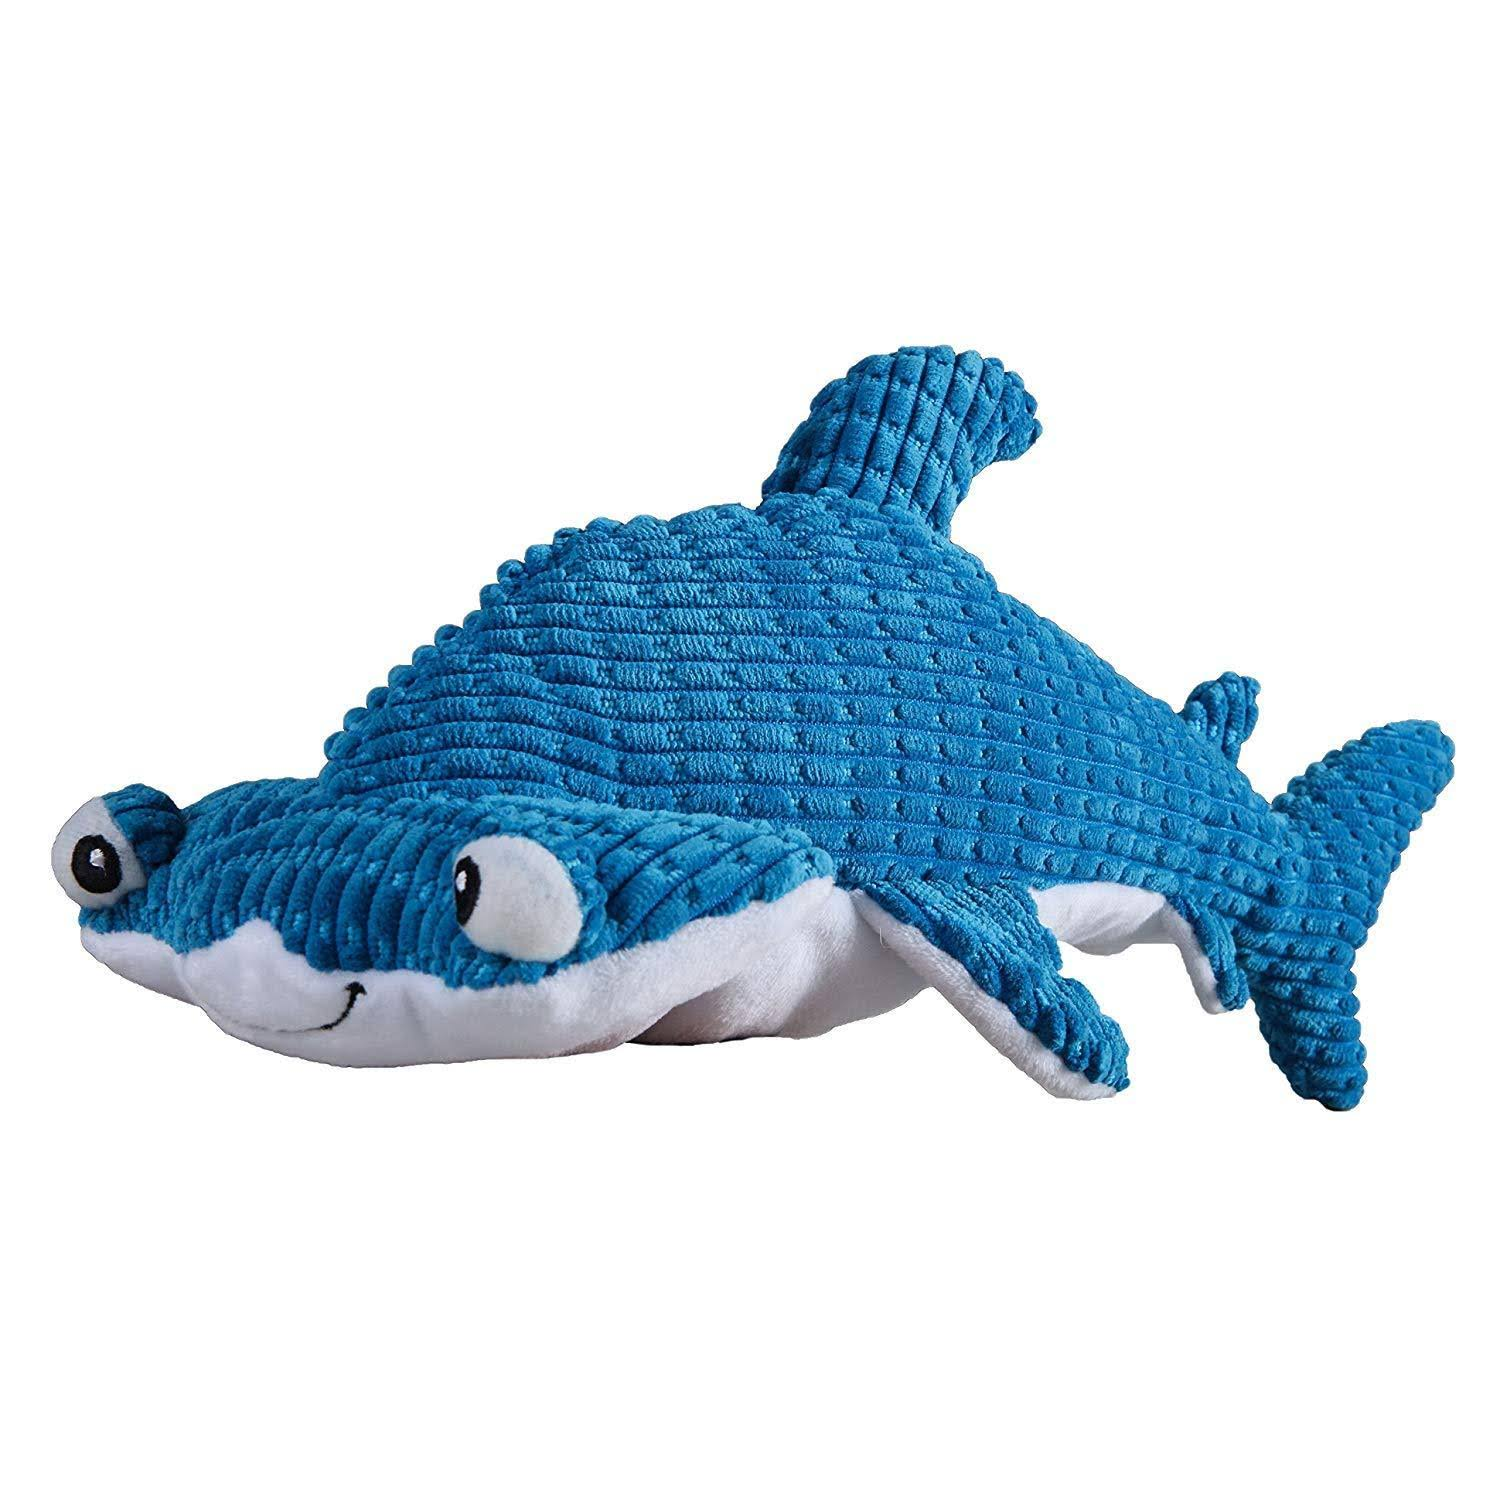 SmartPetLove Tender-Tuffs - Large Marine Plush Toy Hammerhead Shark